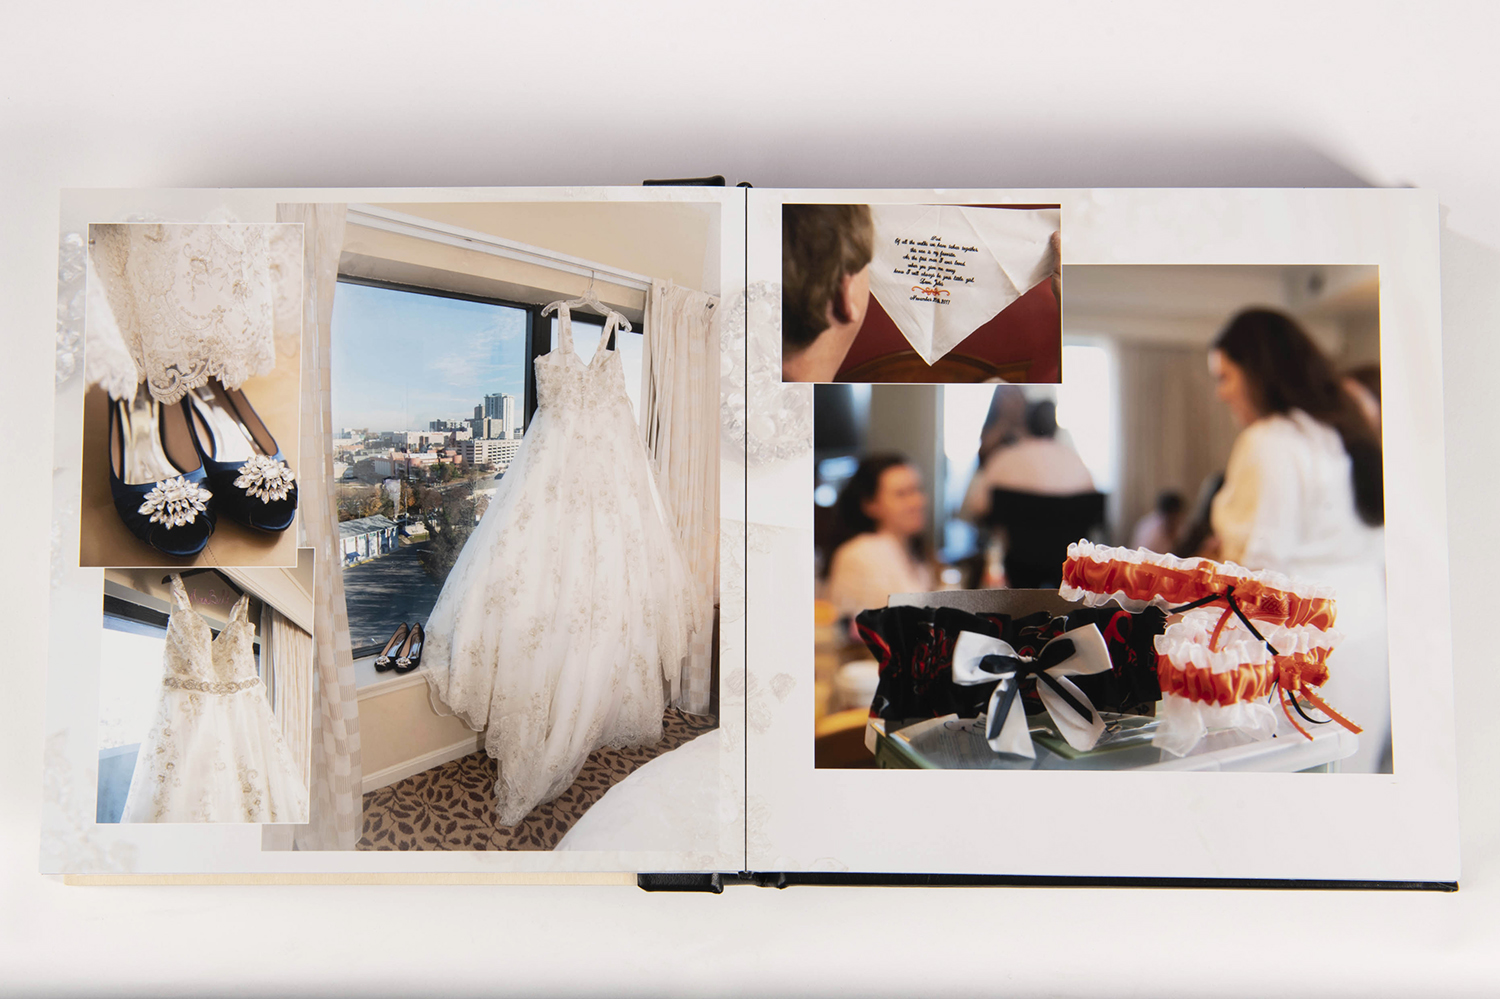 How to Choose Photos for Your Wedding Album